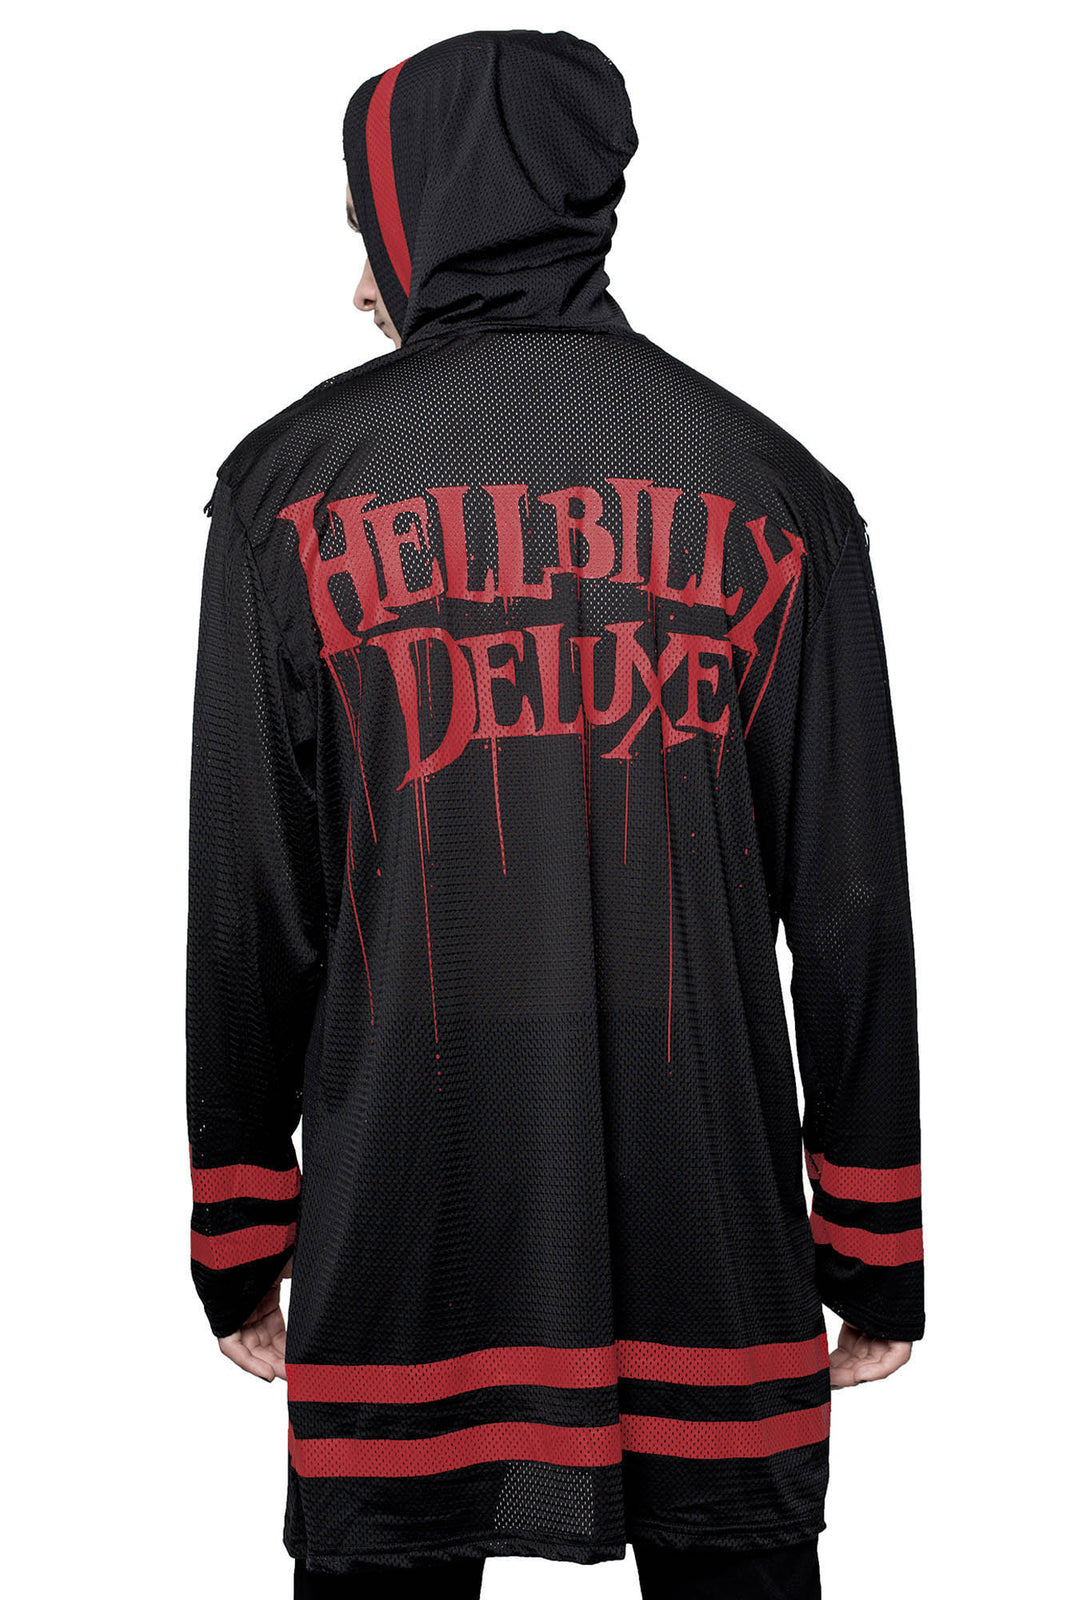 Hellbilly Hockey Jersey